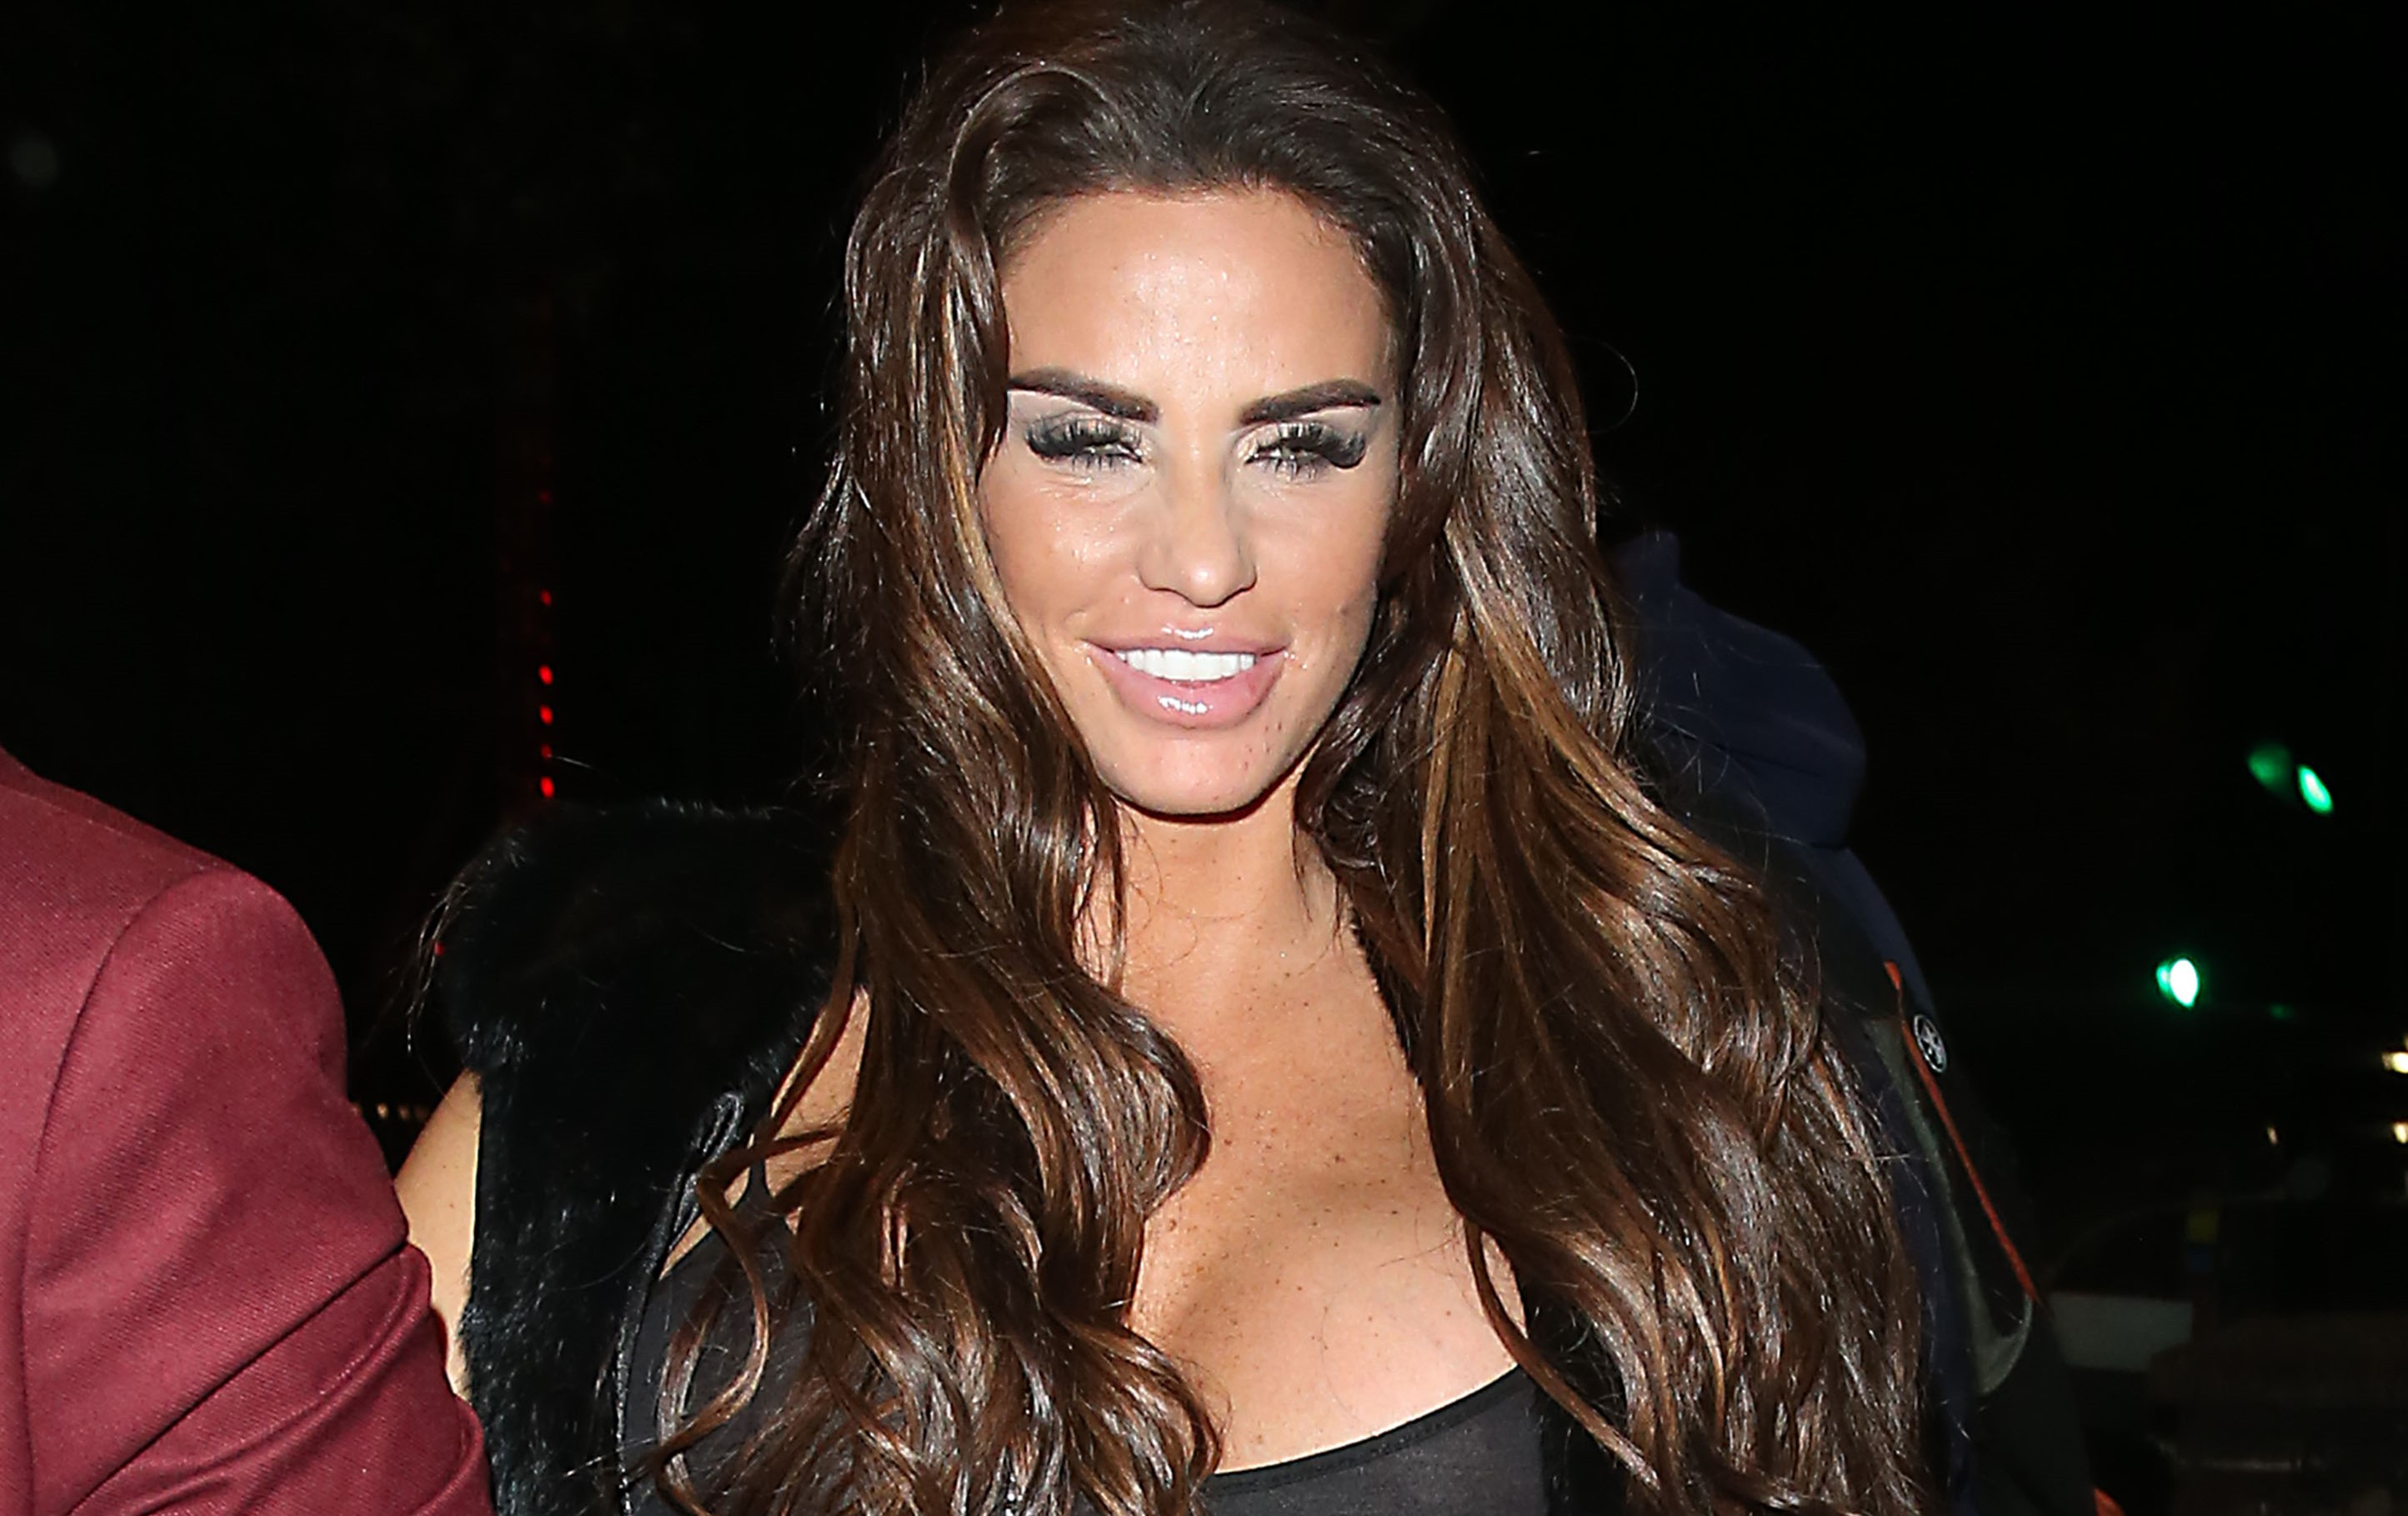 Katie Price makes fans' day with cute Harvey video